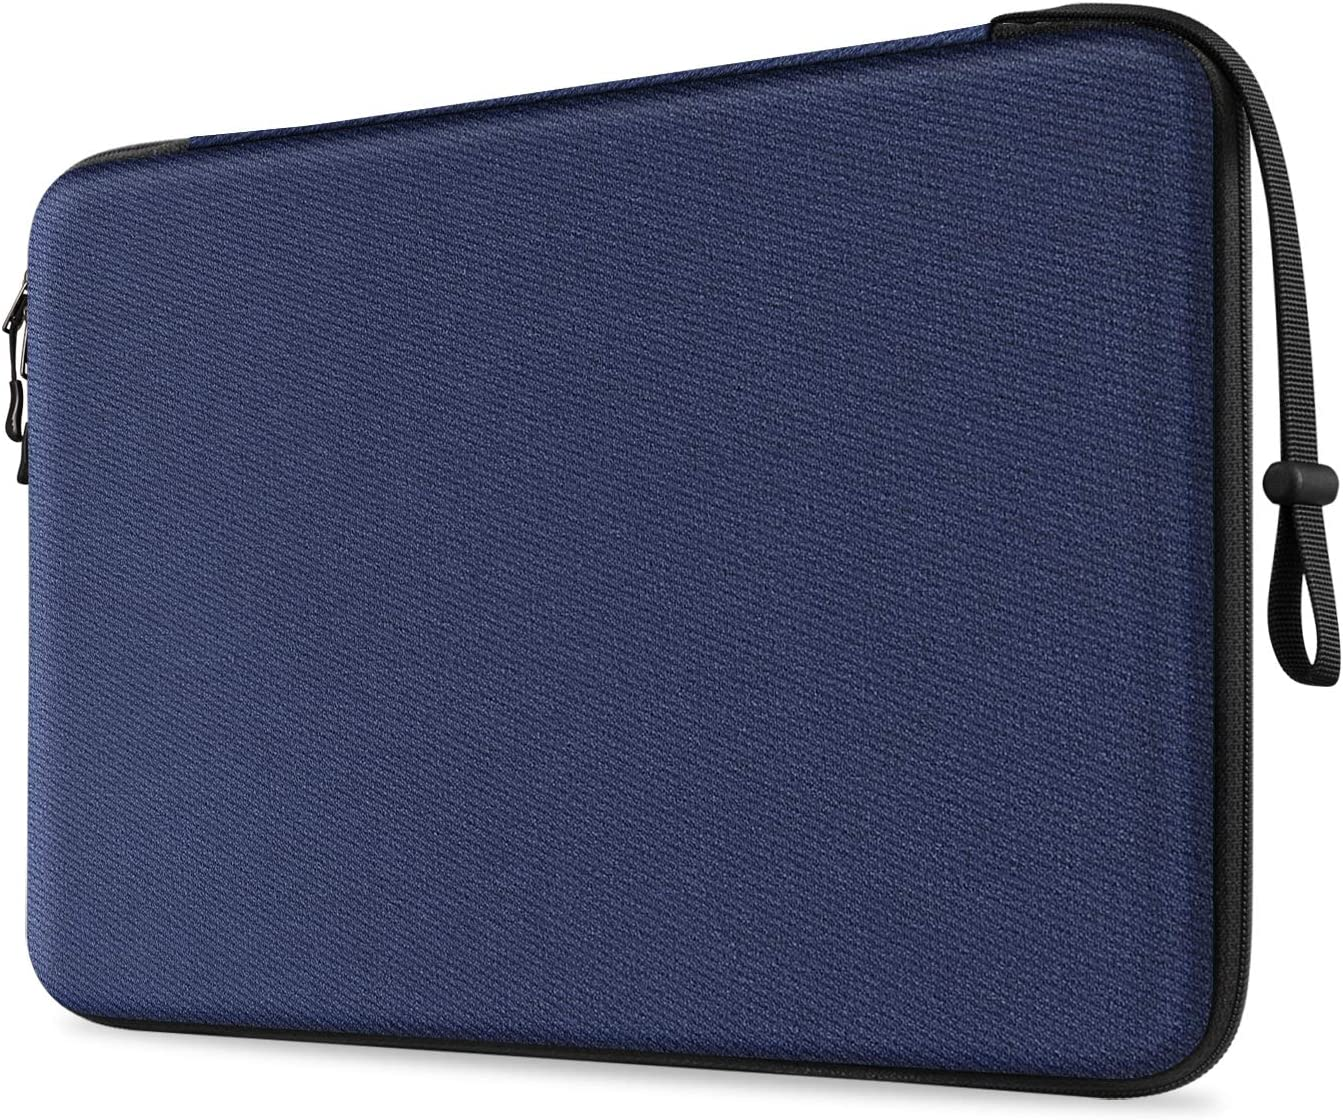 FINPAC 13-inch Hard Laptop Sleeve Compatible for 13.3'' MacBook Air/ Pro, Shockproof Computer Laptop Carrying Case for Dell Inspiron 13/XPS 13, Surface Laptop, HP, Acer, Samsung (Navy)